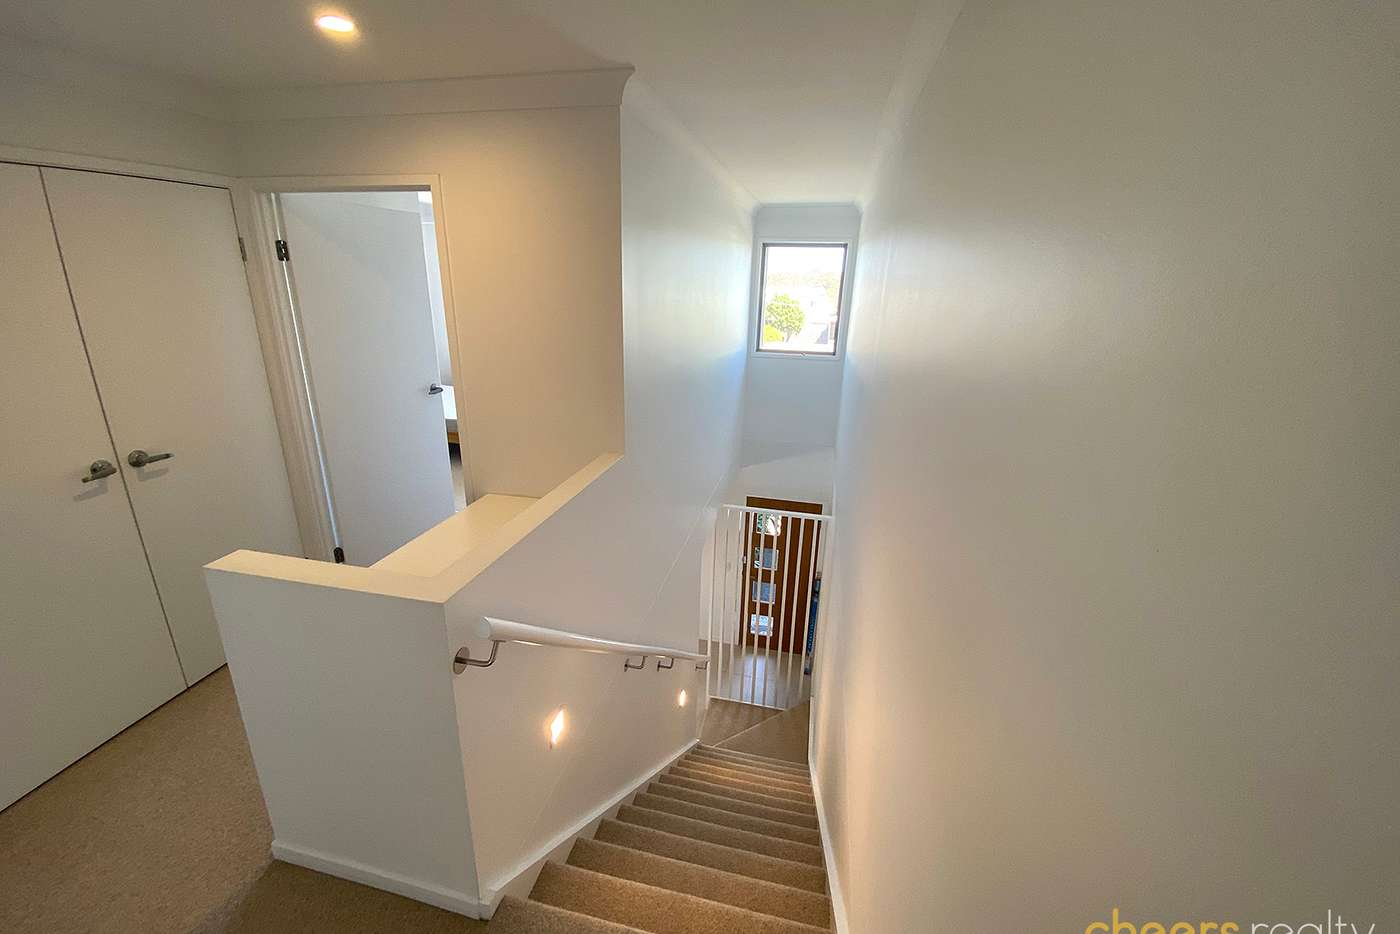 Seventh view of Homely townhouse listing, 122/313 Turton Street, Coopers Plains QLD 4108